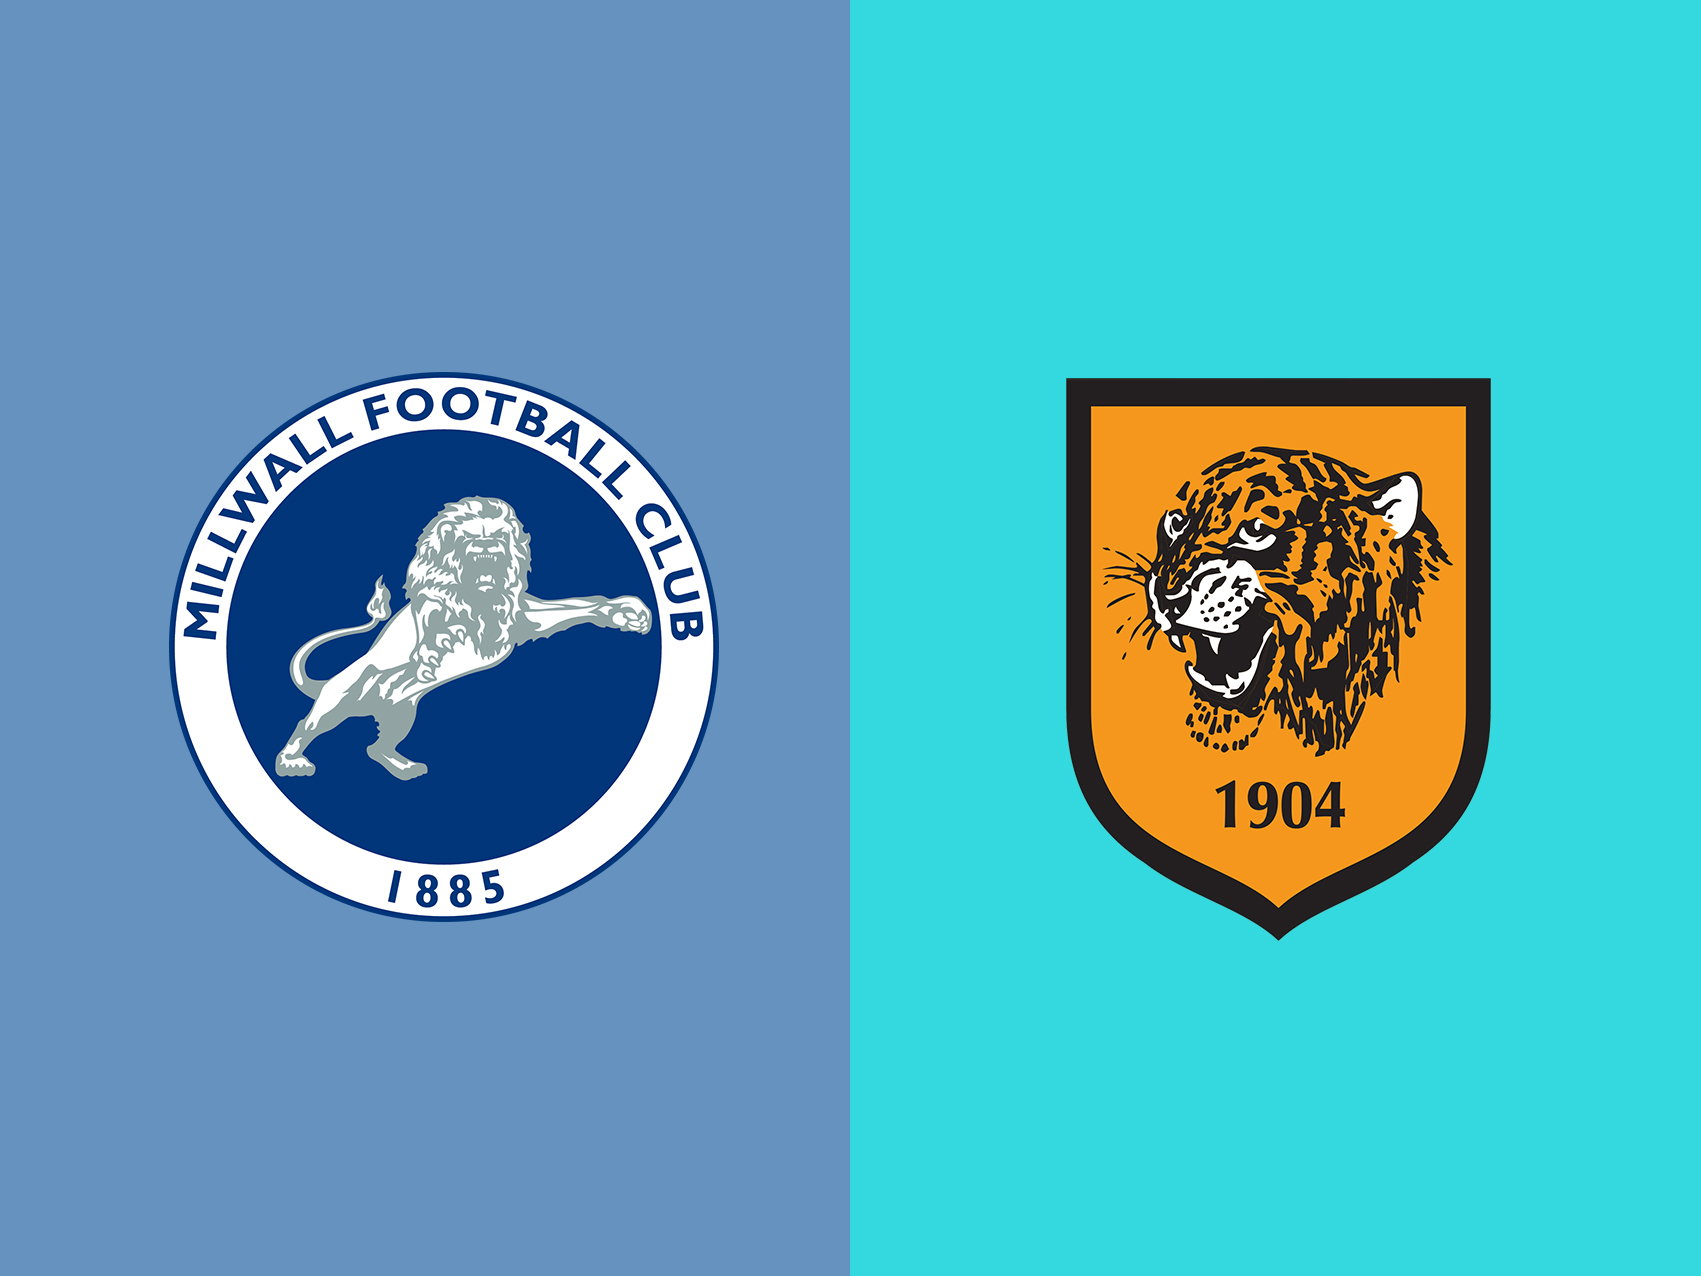 millwall-vs-hull-city-–-tip-bong-da-6-1-2019 1